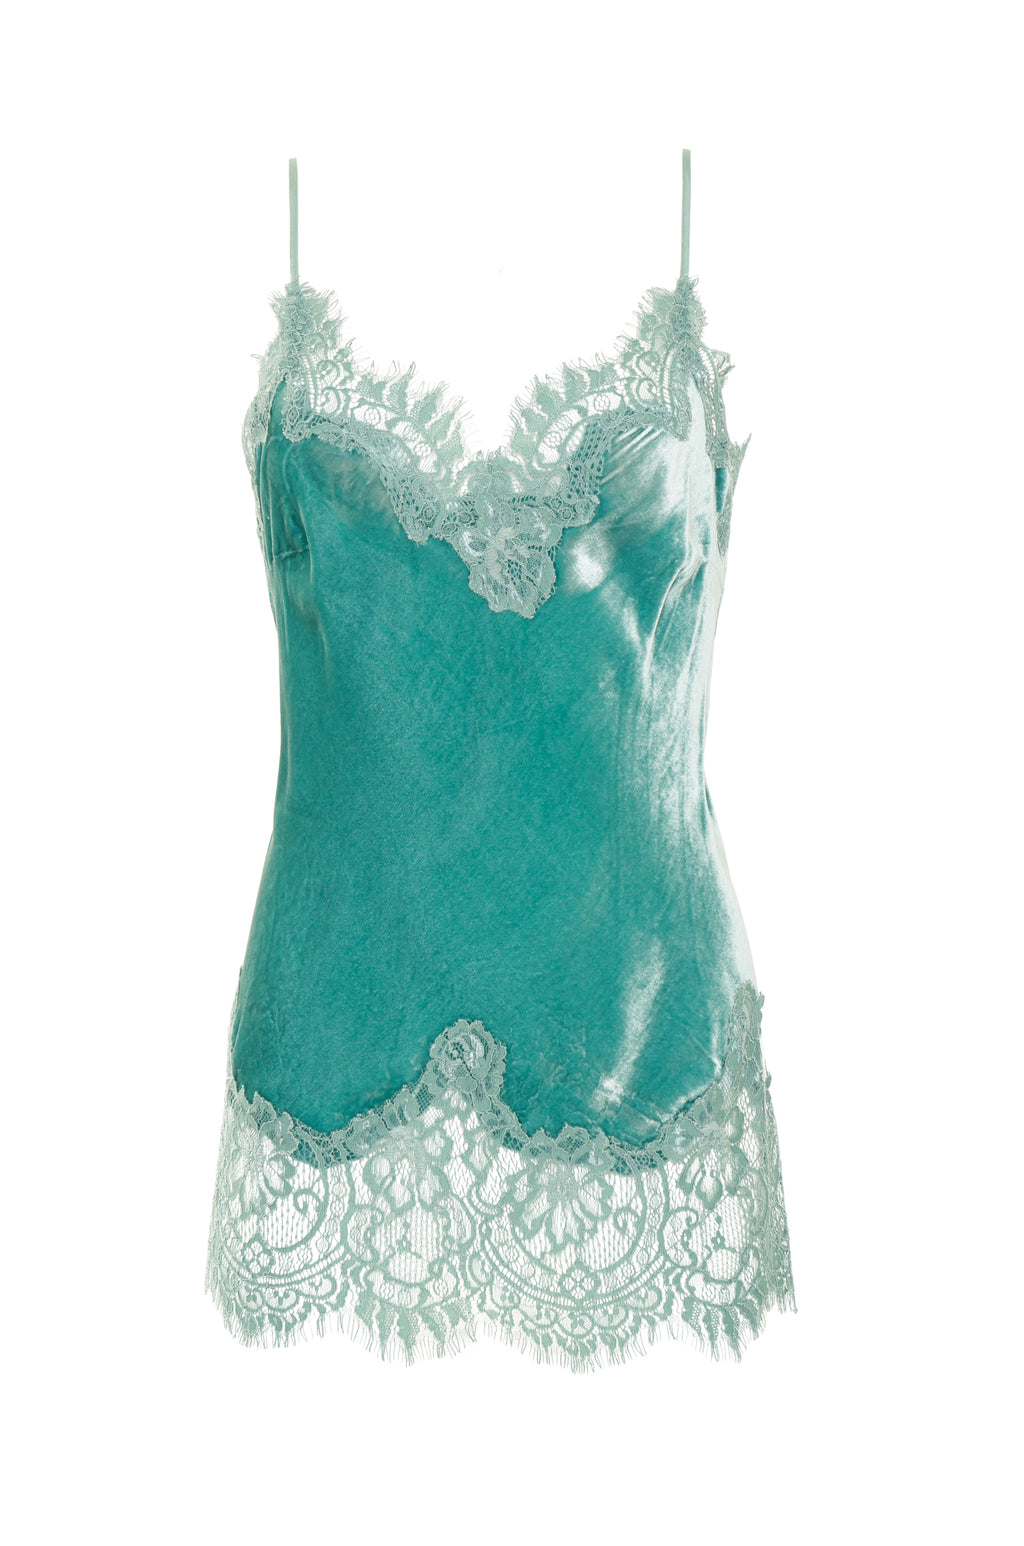 The Anastasia Lace Trim Velvet Cami in oil blue.